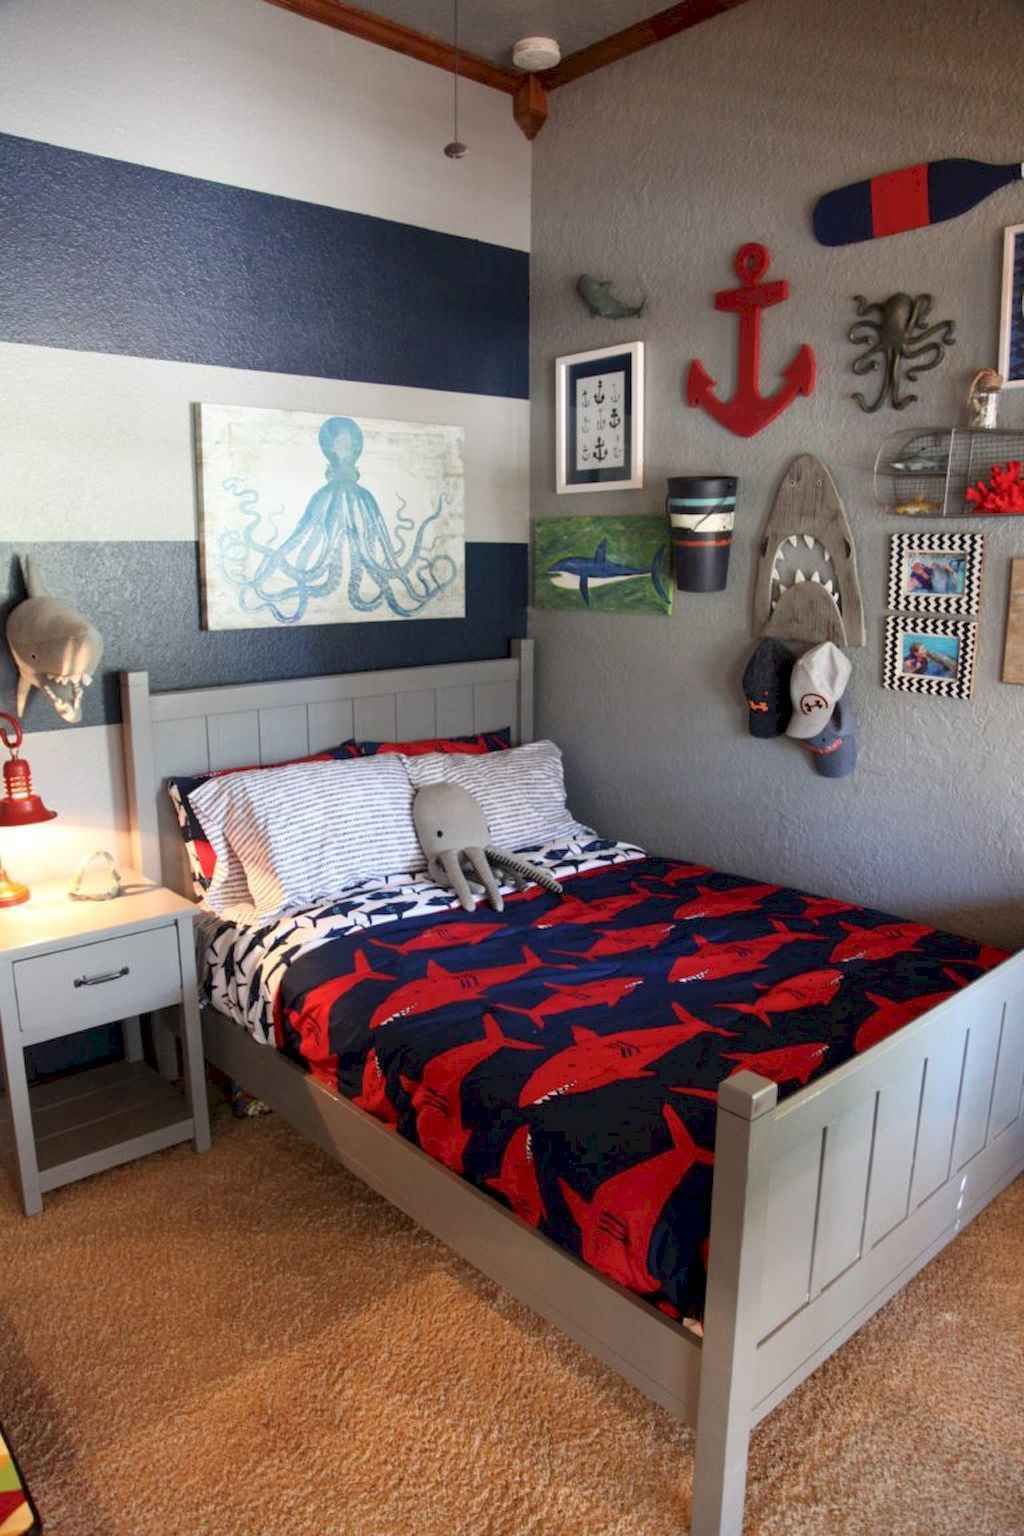 Awesome bedroom decoration ideas (58)